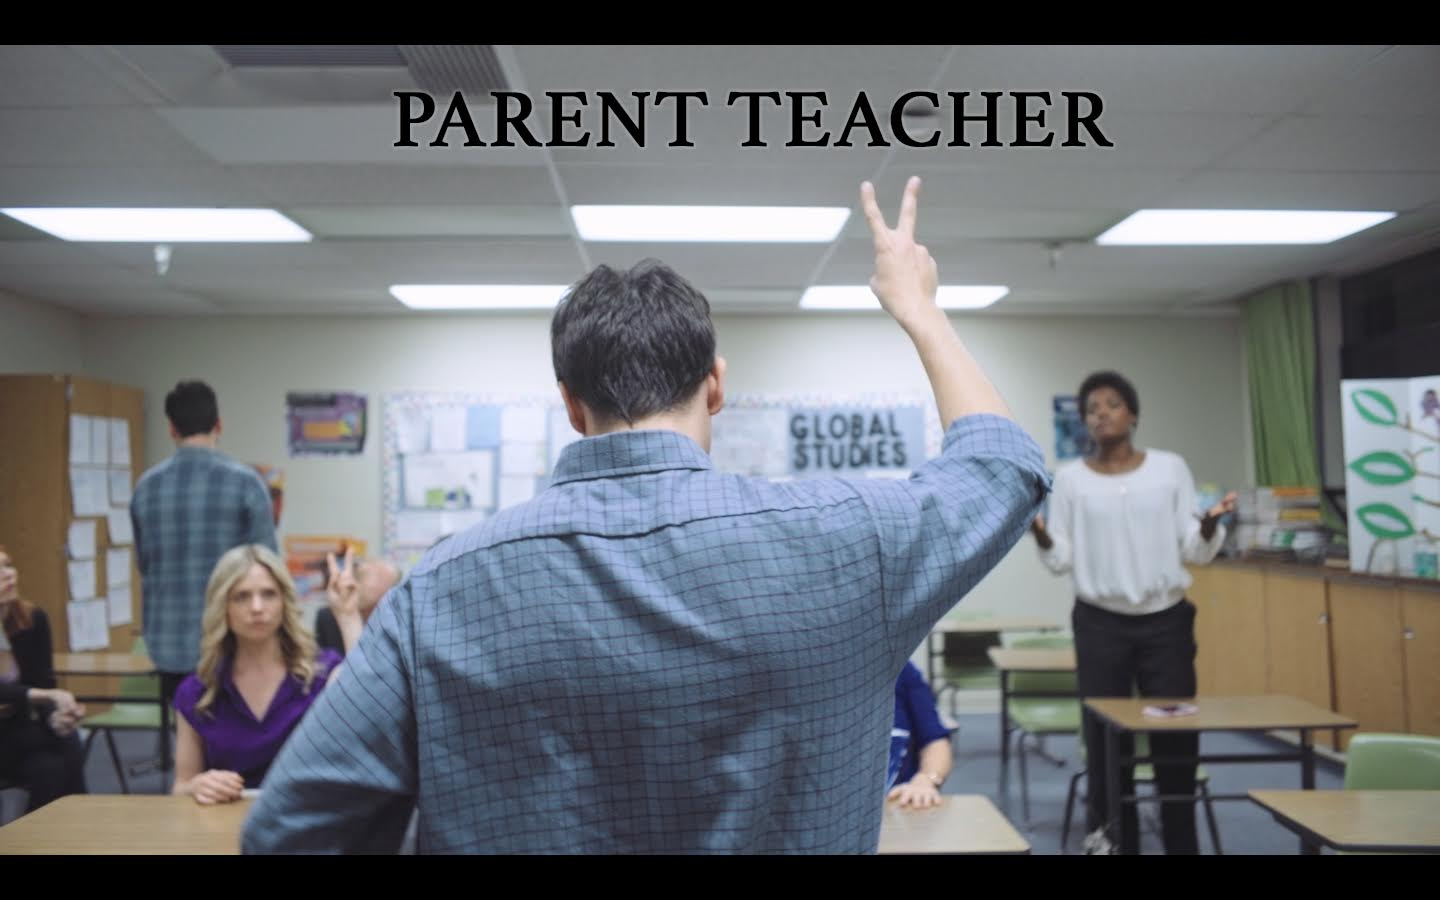 parent teacher poster.jpg